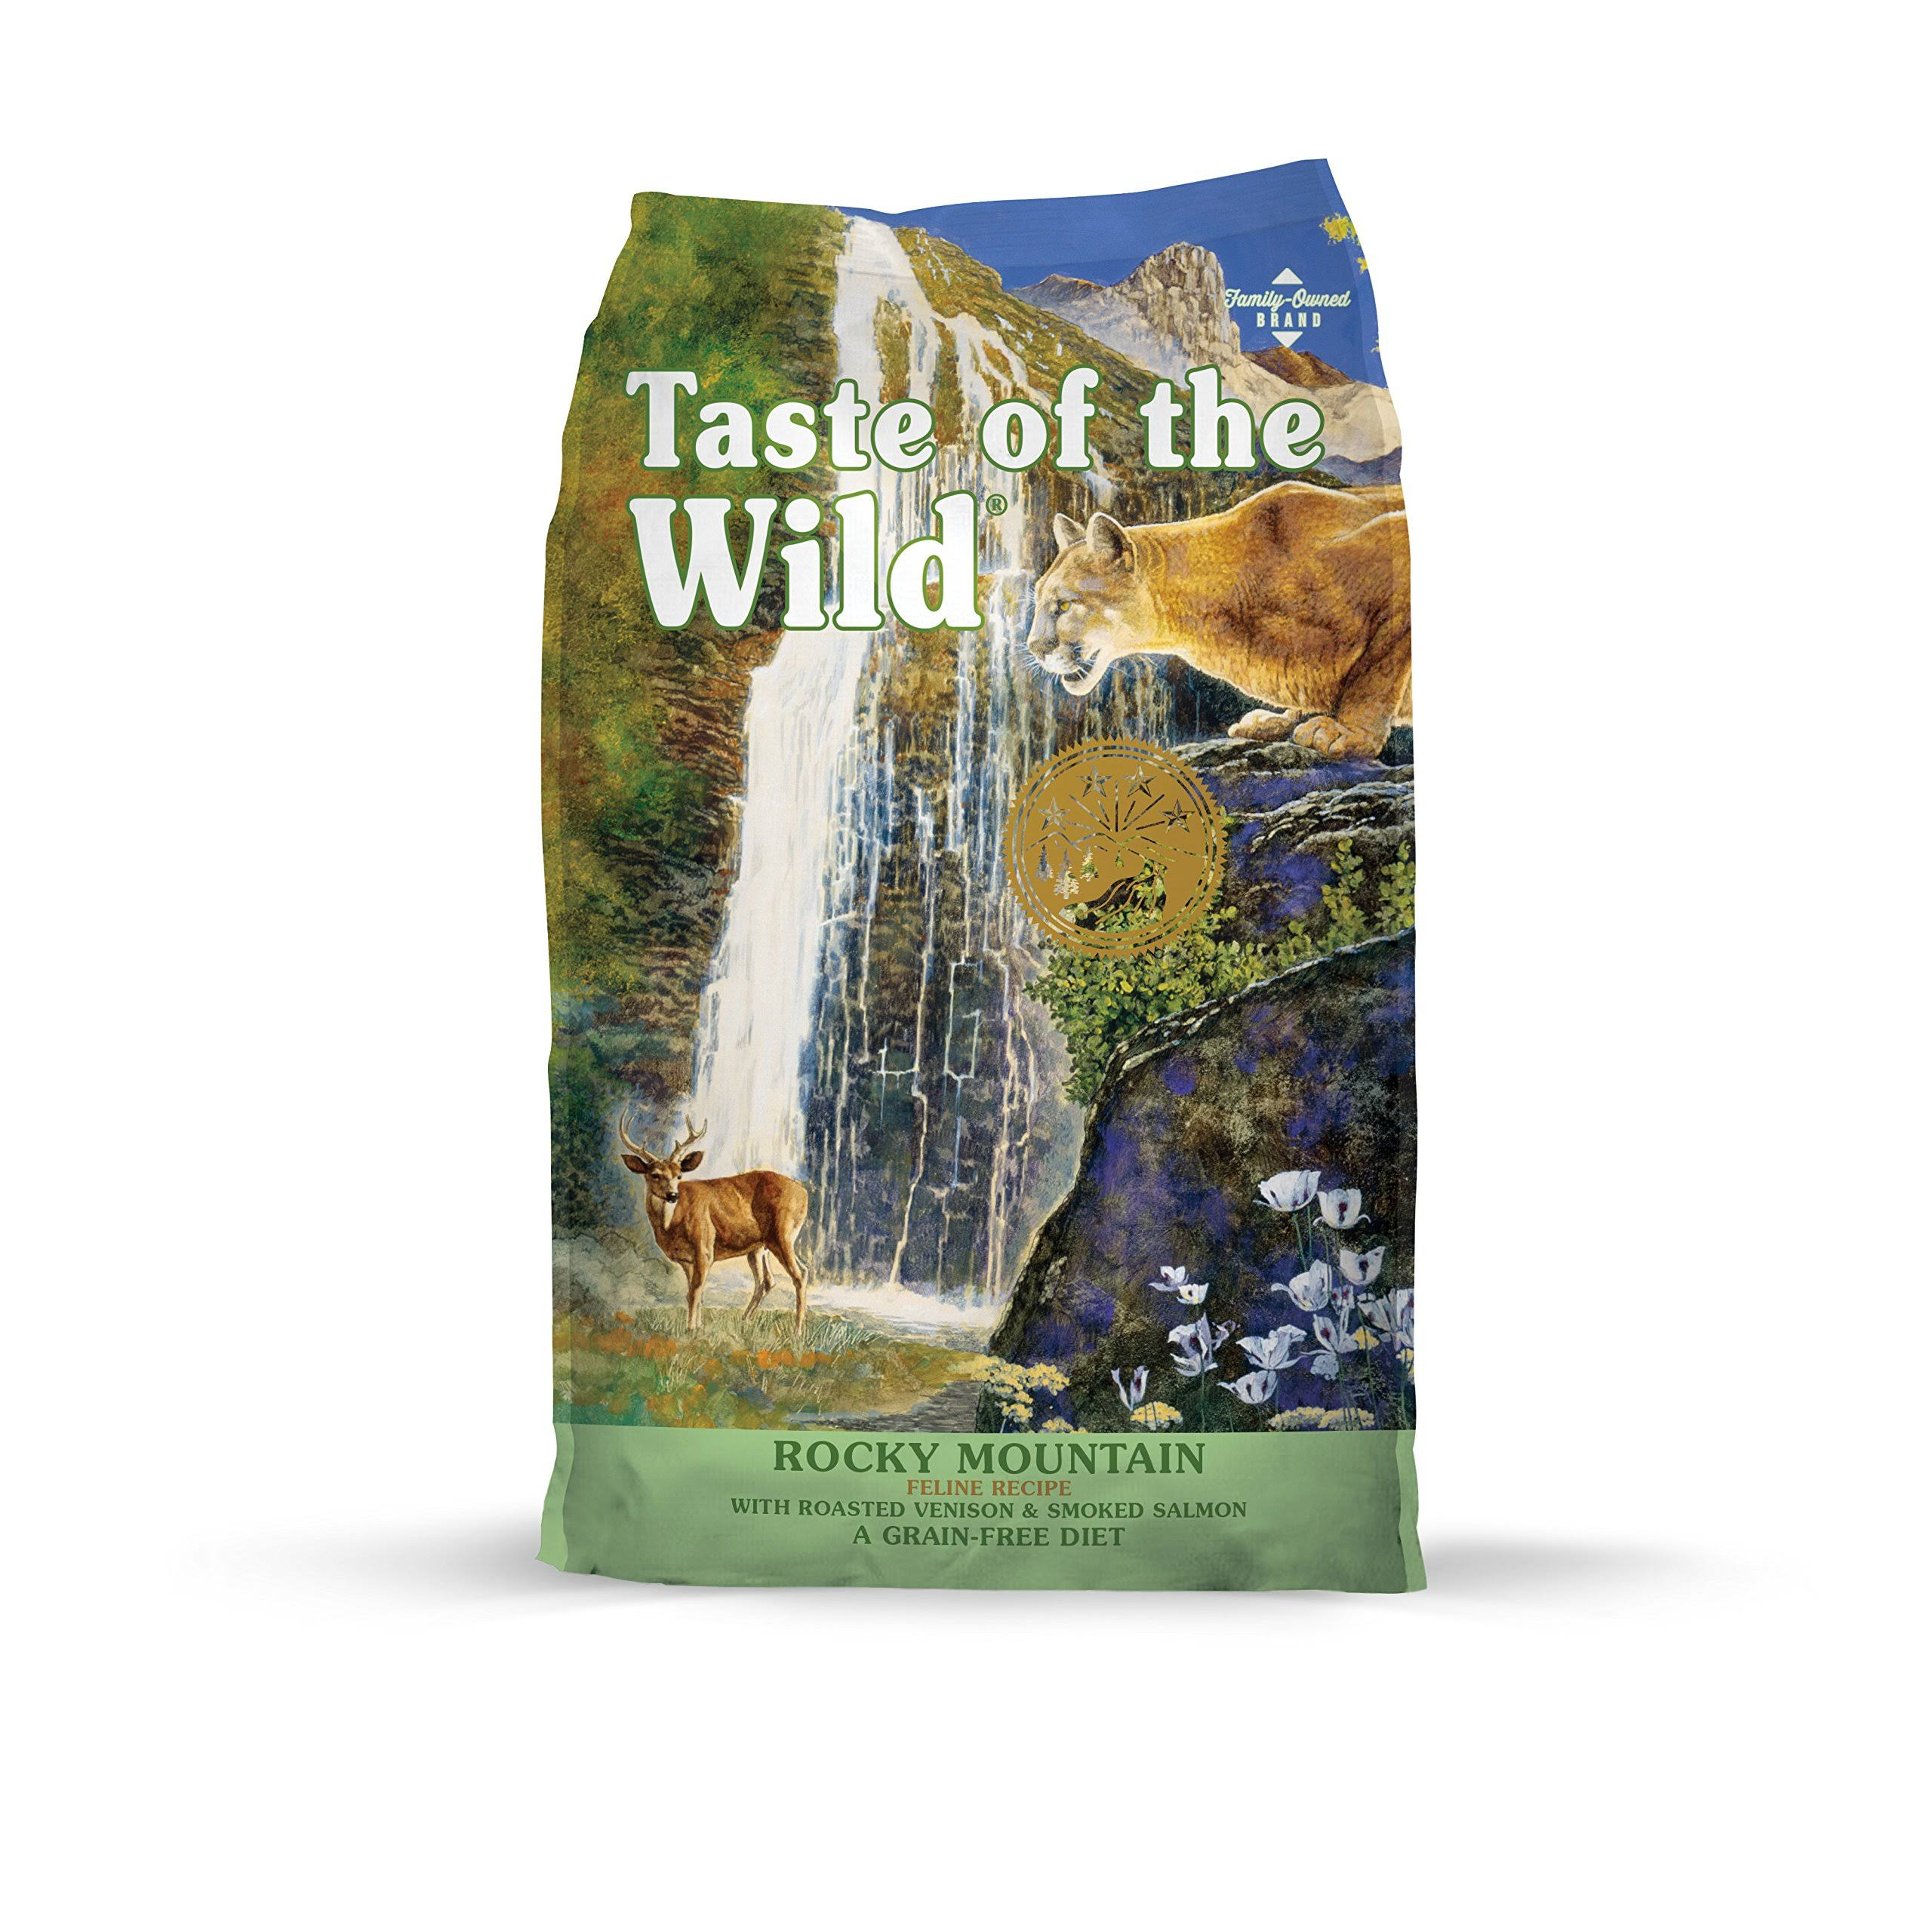 Taste of the Wild Cat Food - Rocky Mountain Feline Formula with Roasted Venison and Smoked Salmon